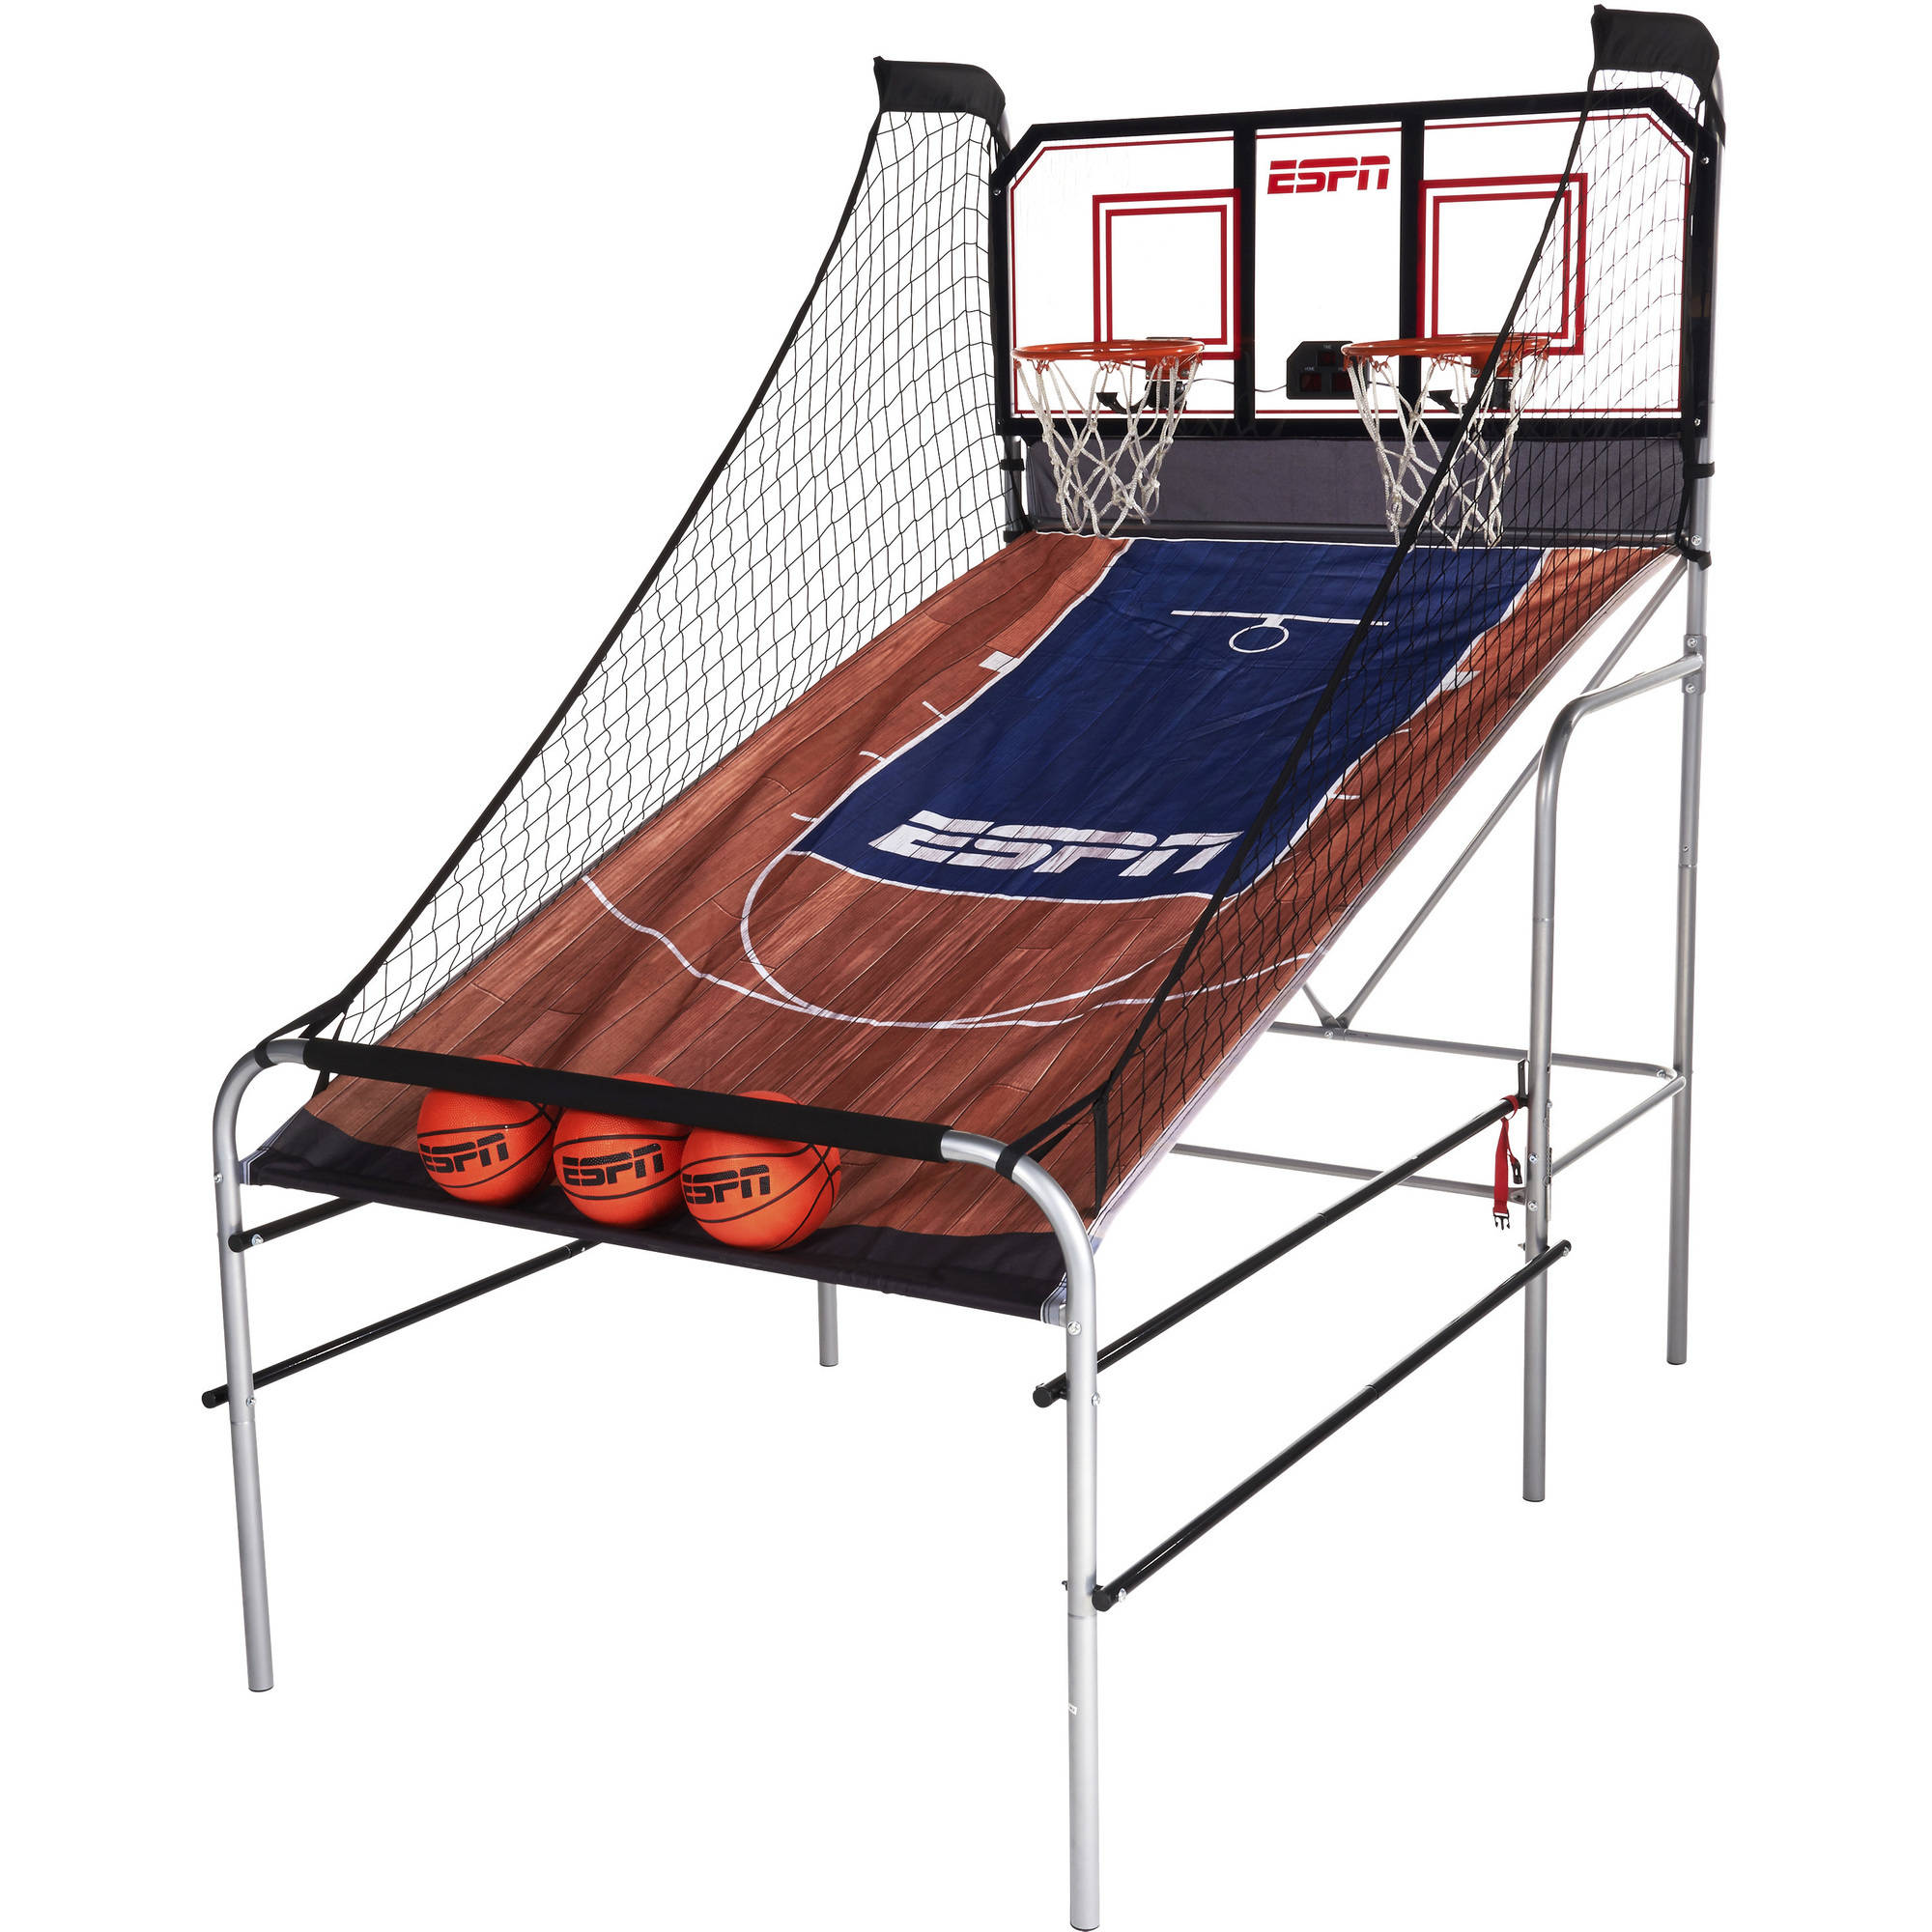 ESPN 2-Player Basketball Game with Polycarbonate Backboard (includes 3 basketballs and 1 air pump)